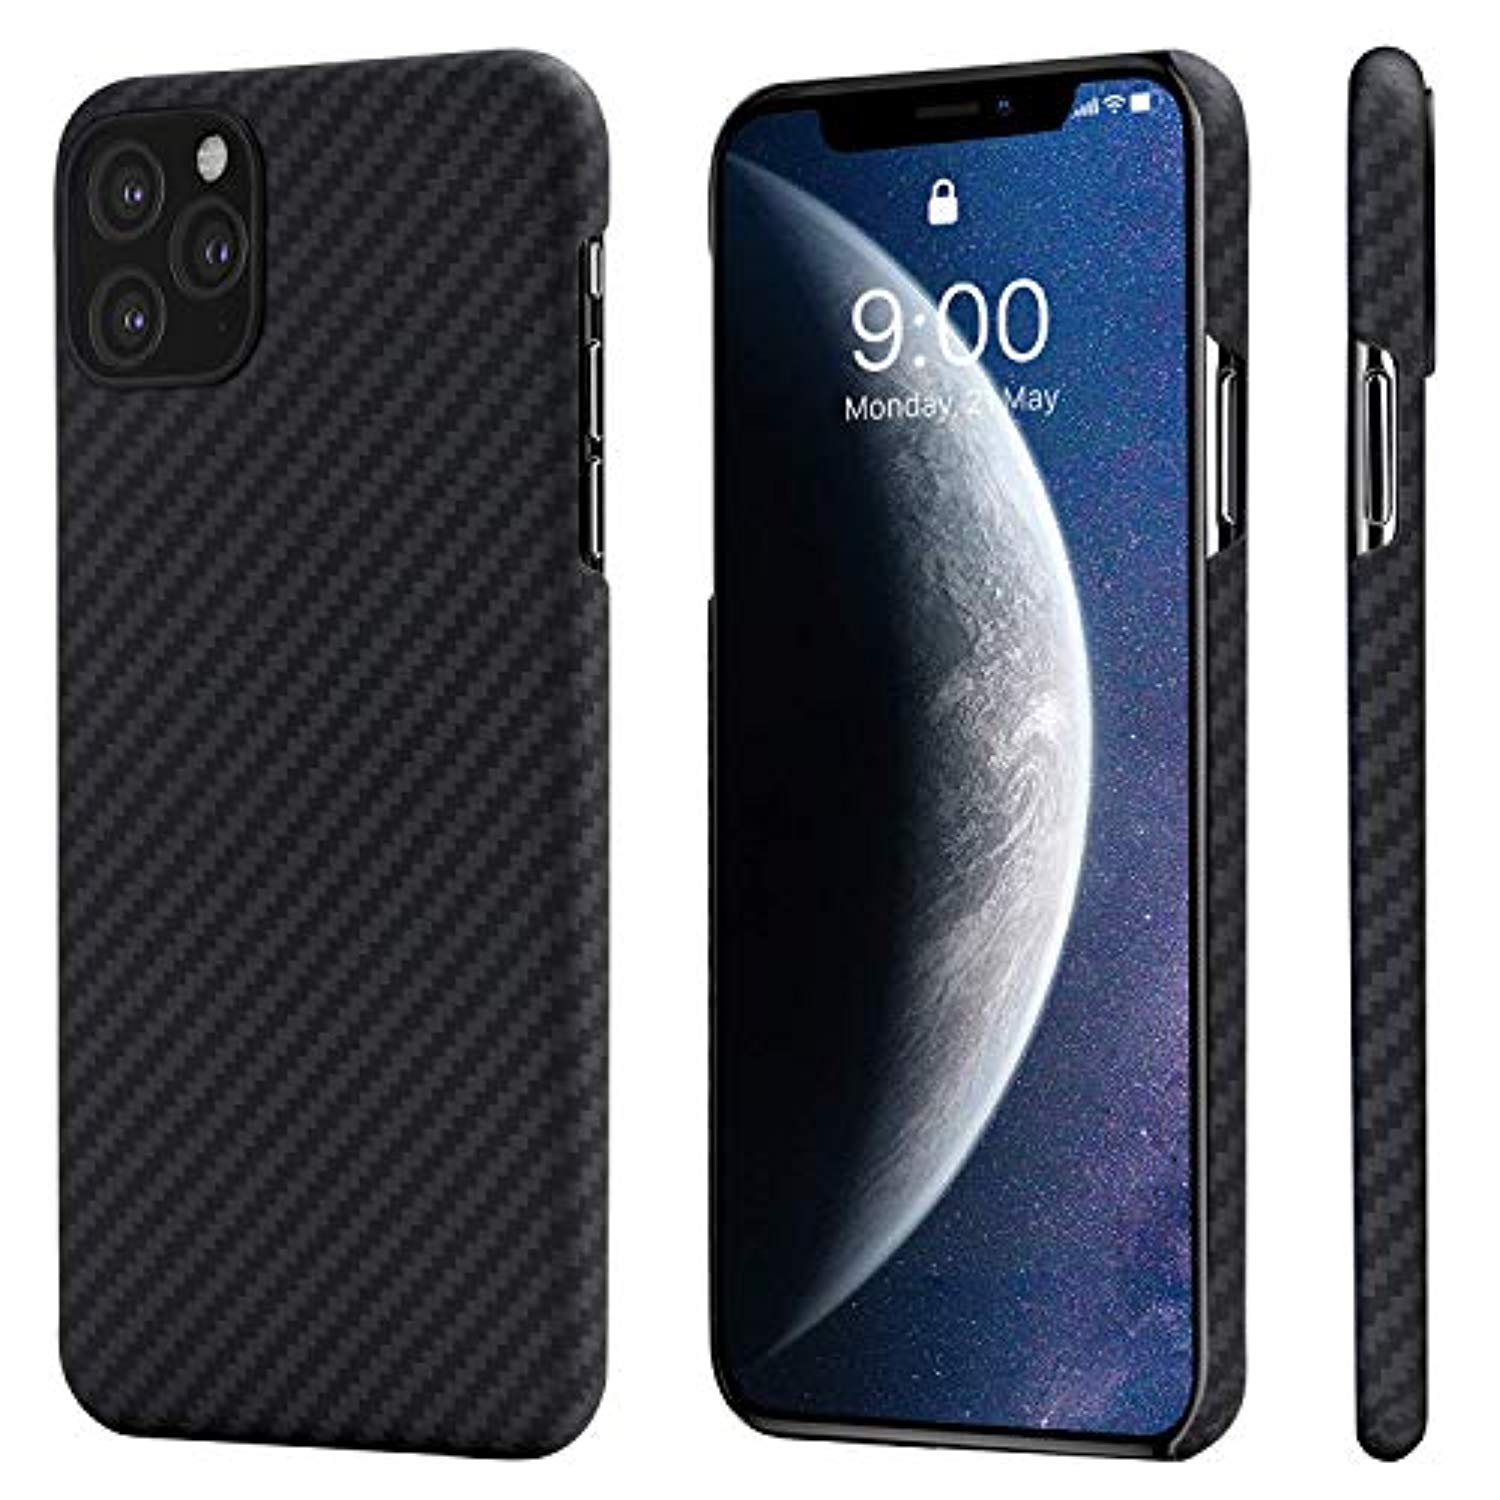 Case Mate Iphone 11 | Armor Carbon Fiber Case For IPhone 11 Pro Max XS XR X 6 6s 7 8 Plus Phone Cases PP Soft Super Antishock Capa Coque Cover